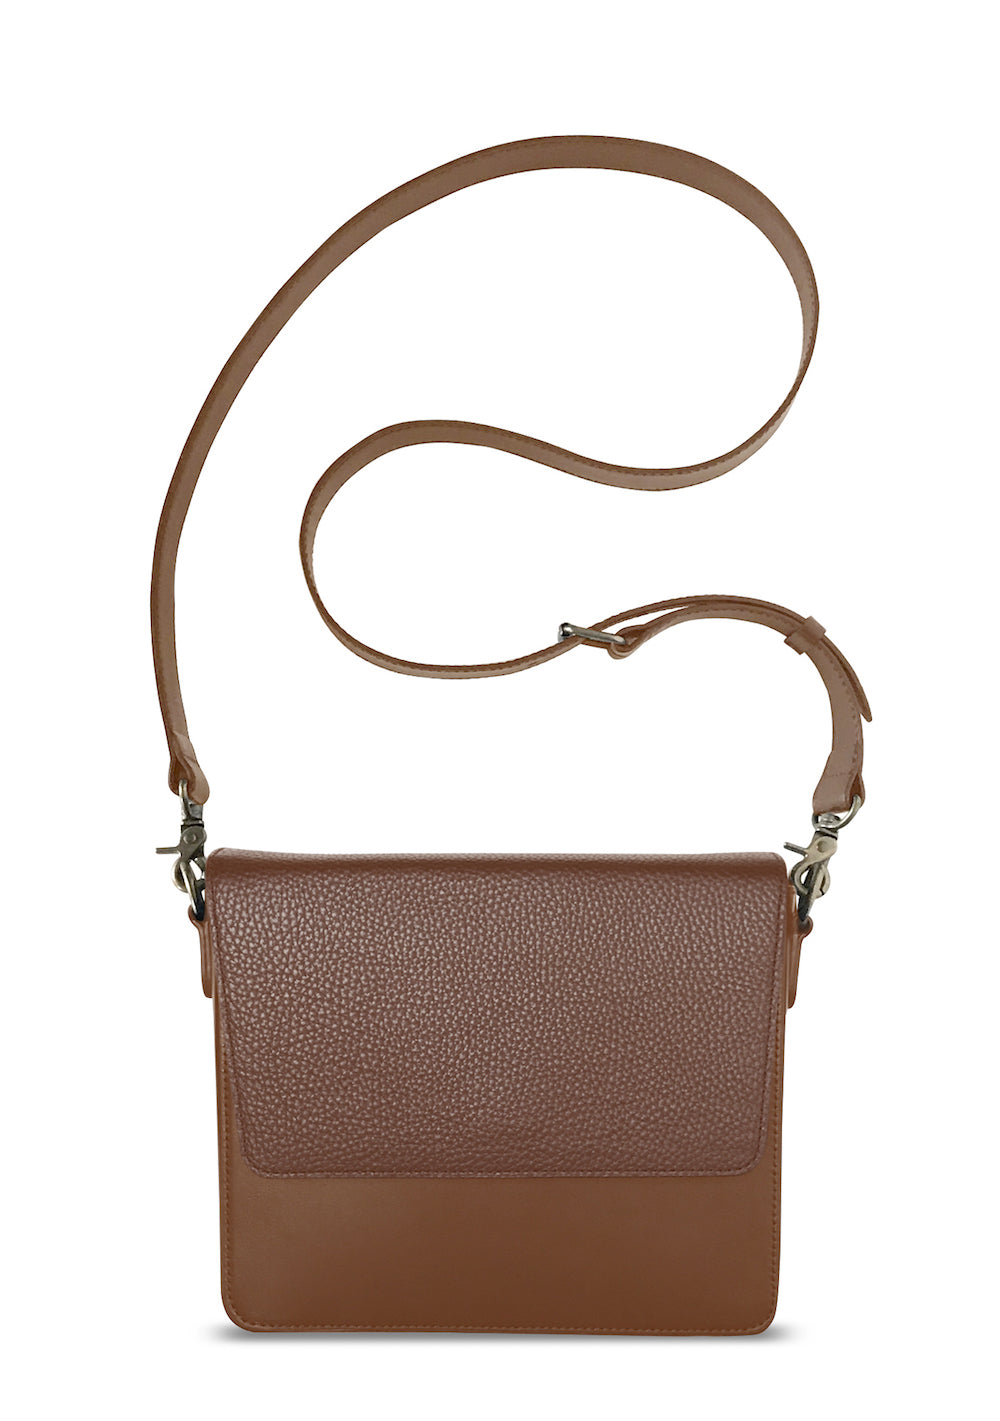 Brown Rectangular Body with Brown Rectangular Flap